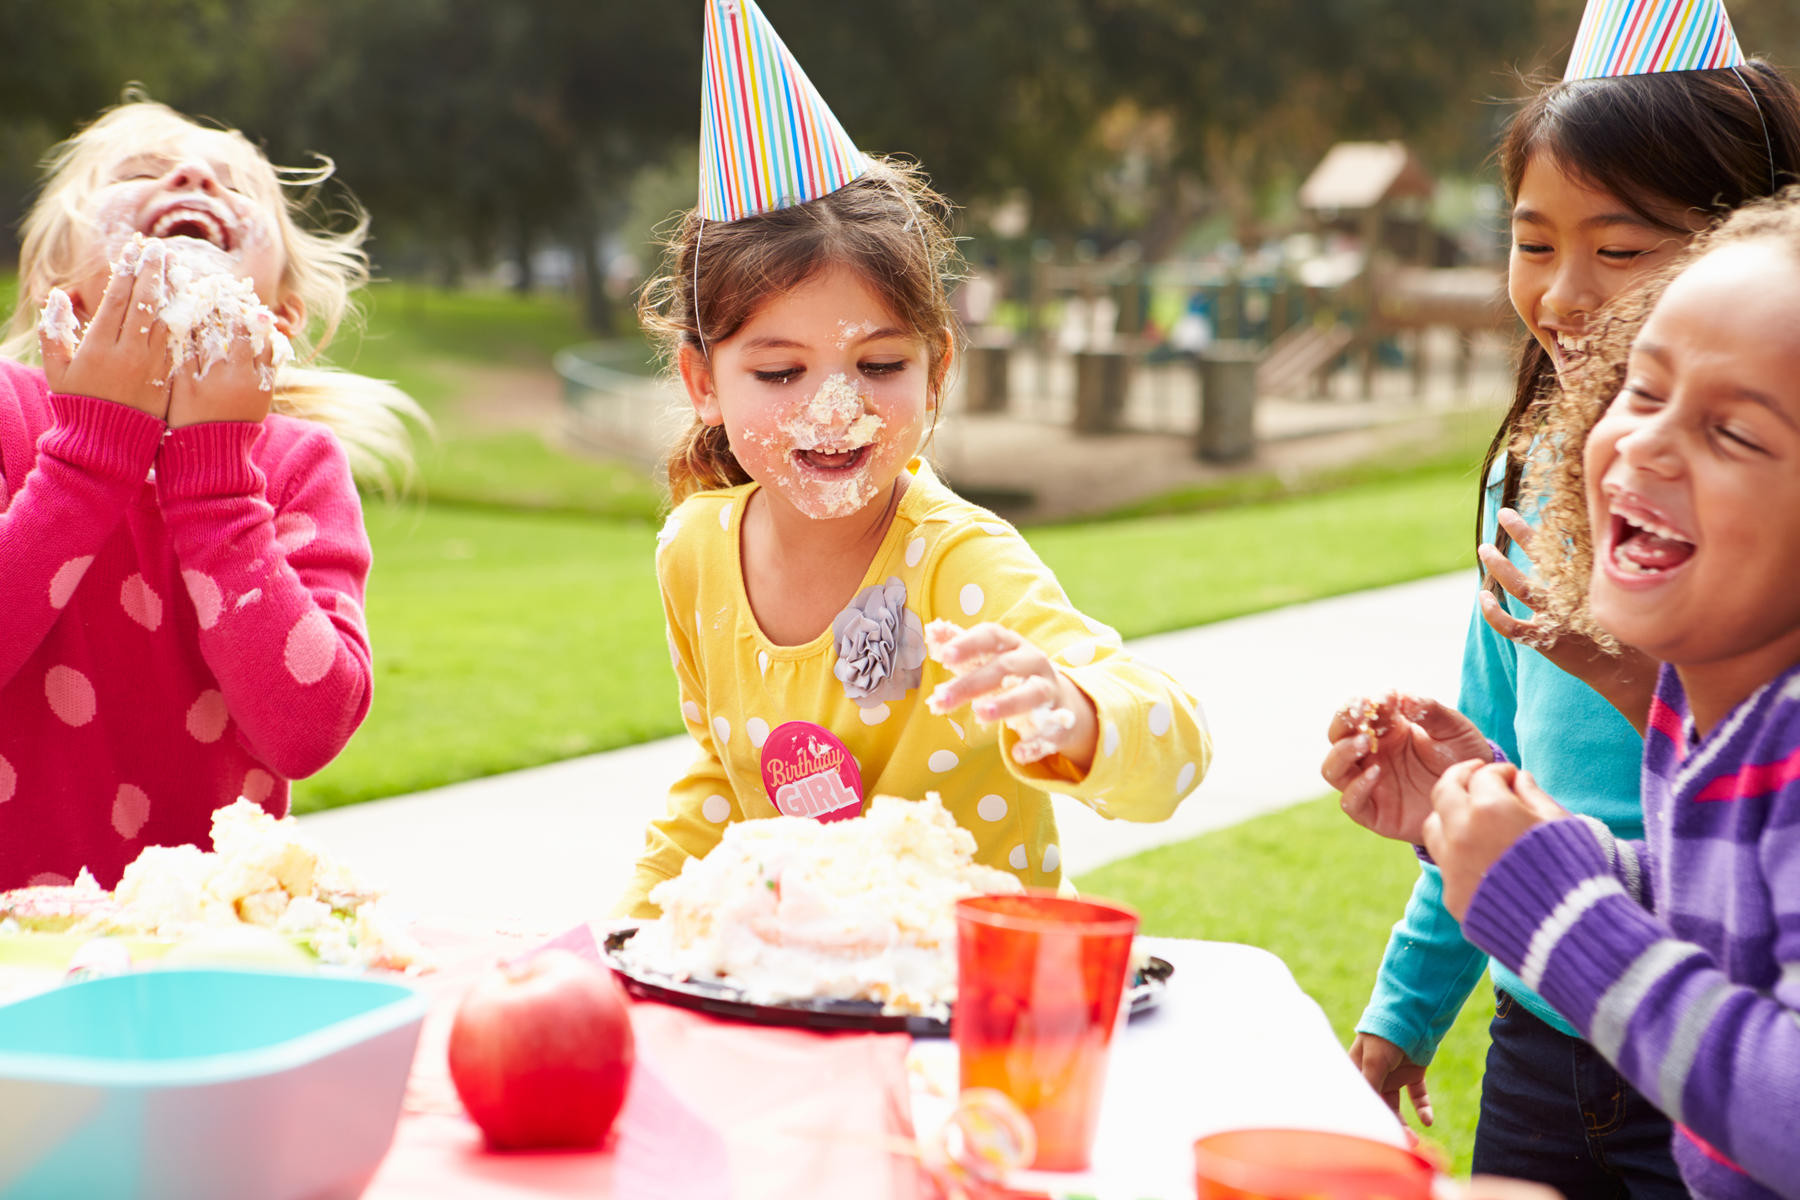 Best ideas about Place To Have A Kids Birthday Party . Save or Pin 15 Great Places to Have a Party Now.